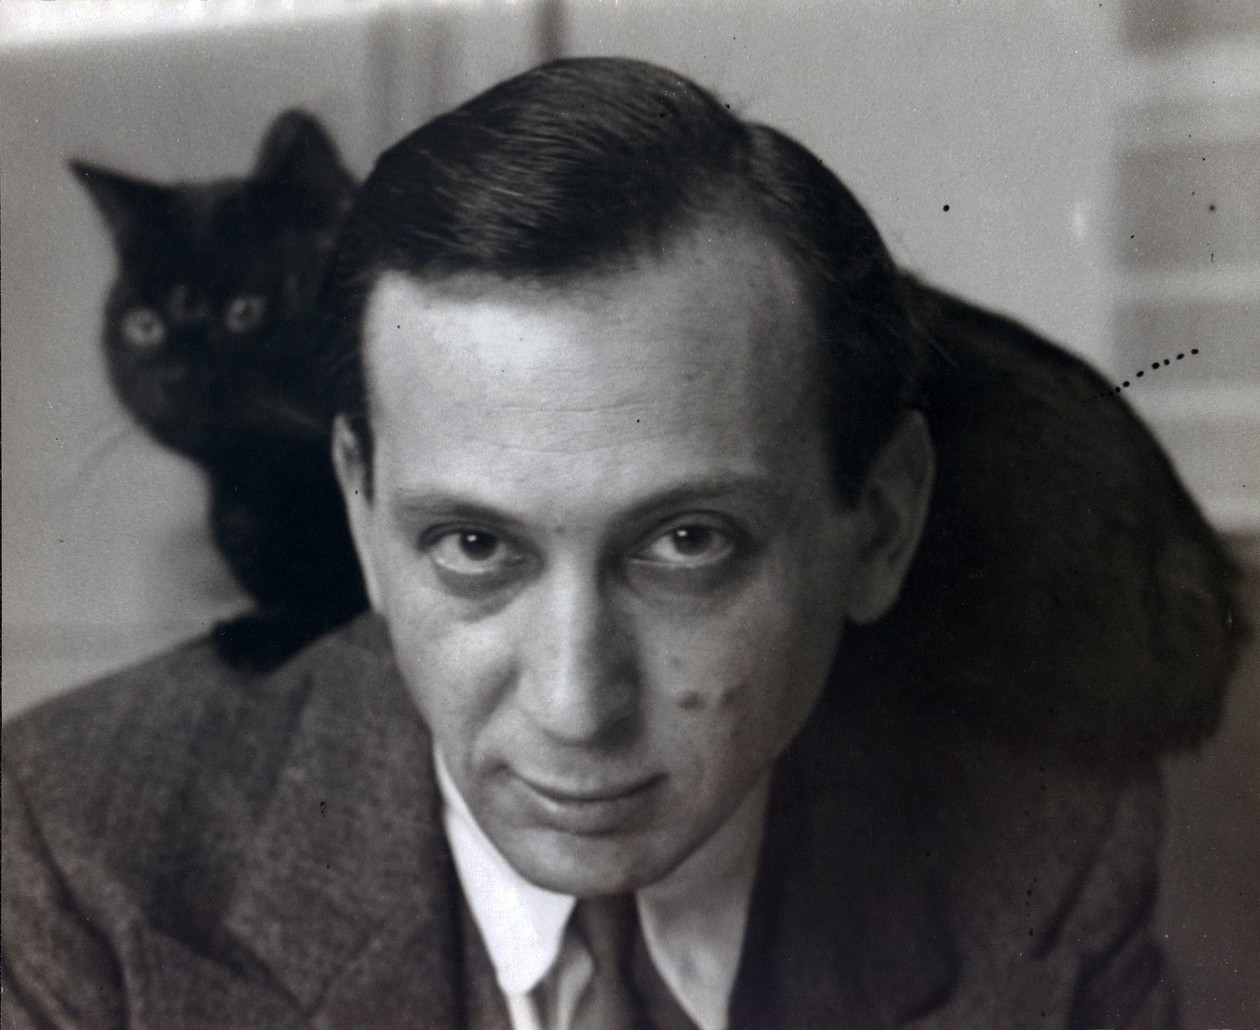 Self-portrait with chat noir (variant) (c. 1925) by André Kertész